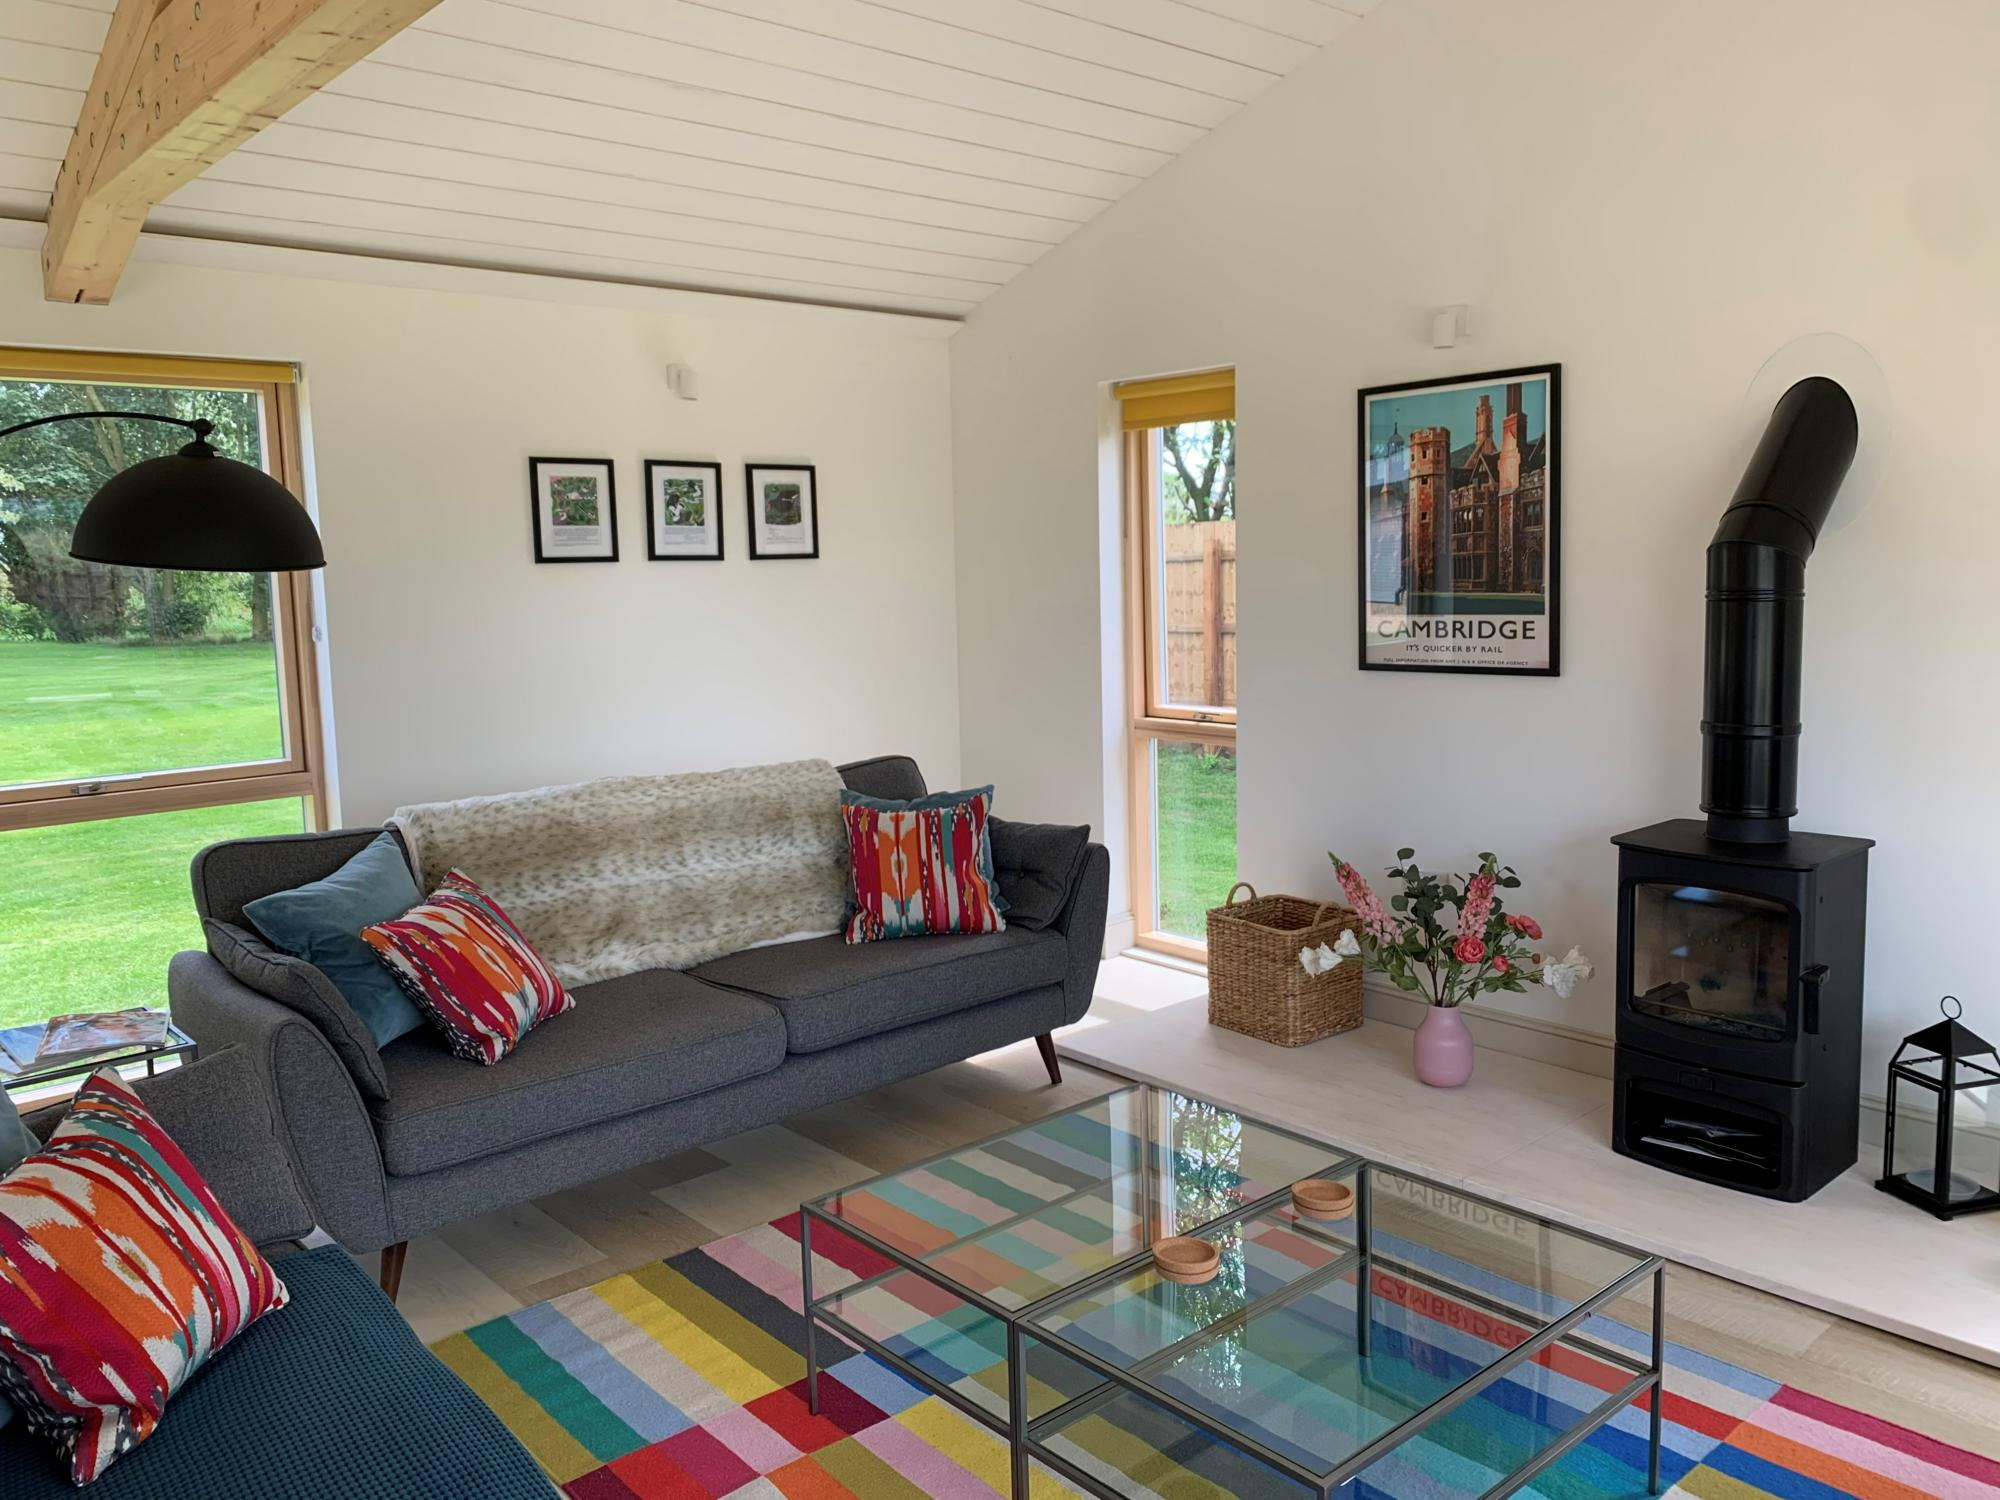 Self-Catering in Cambridgeshire holidays at Cool Places